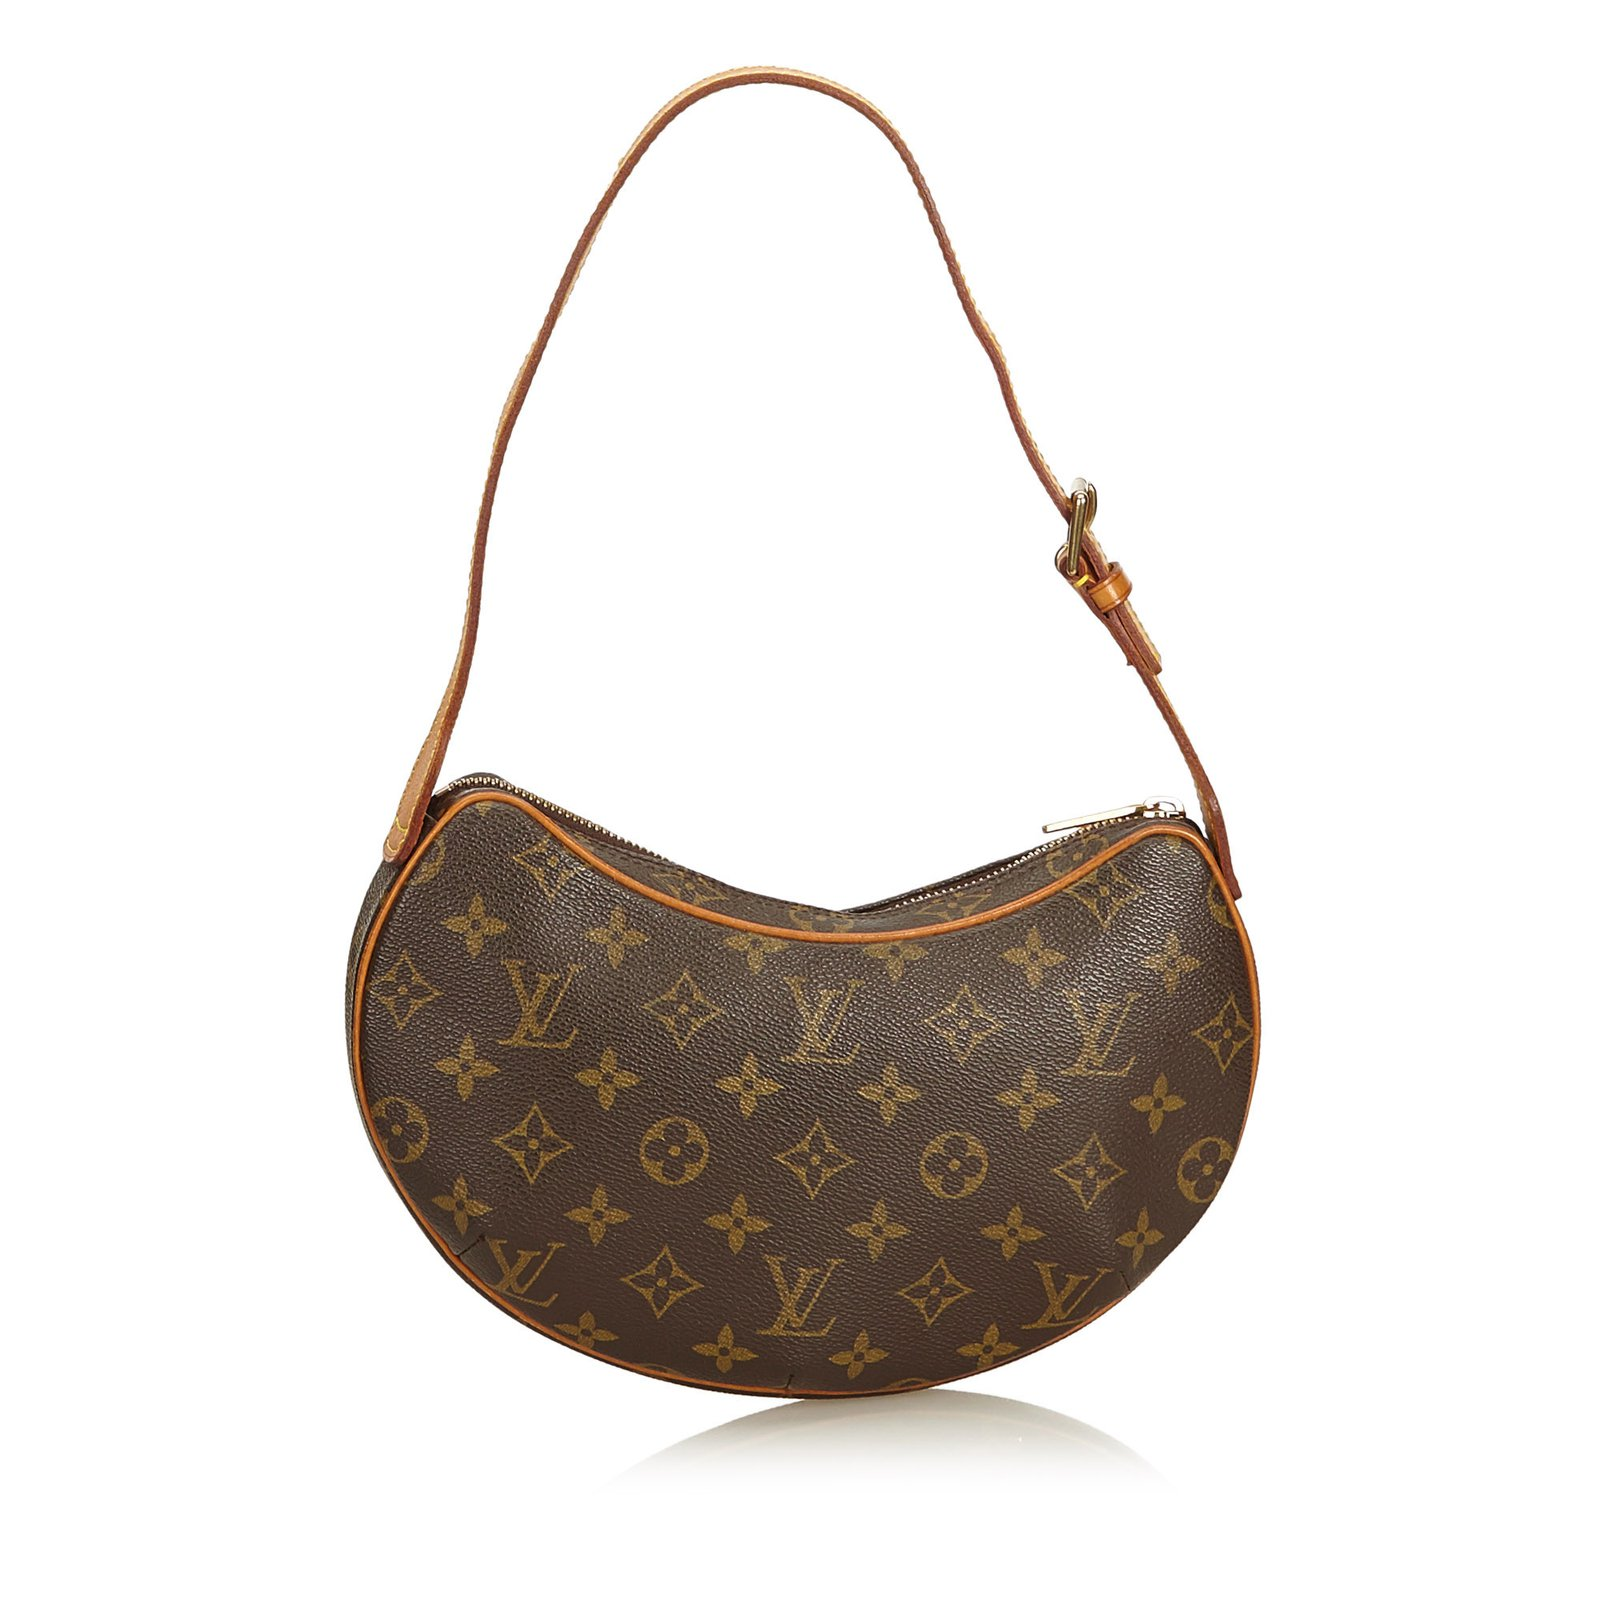 ce023827bfff Louis Vuitton Monogram Croissant PM Handbags Leather